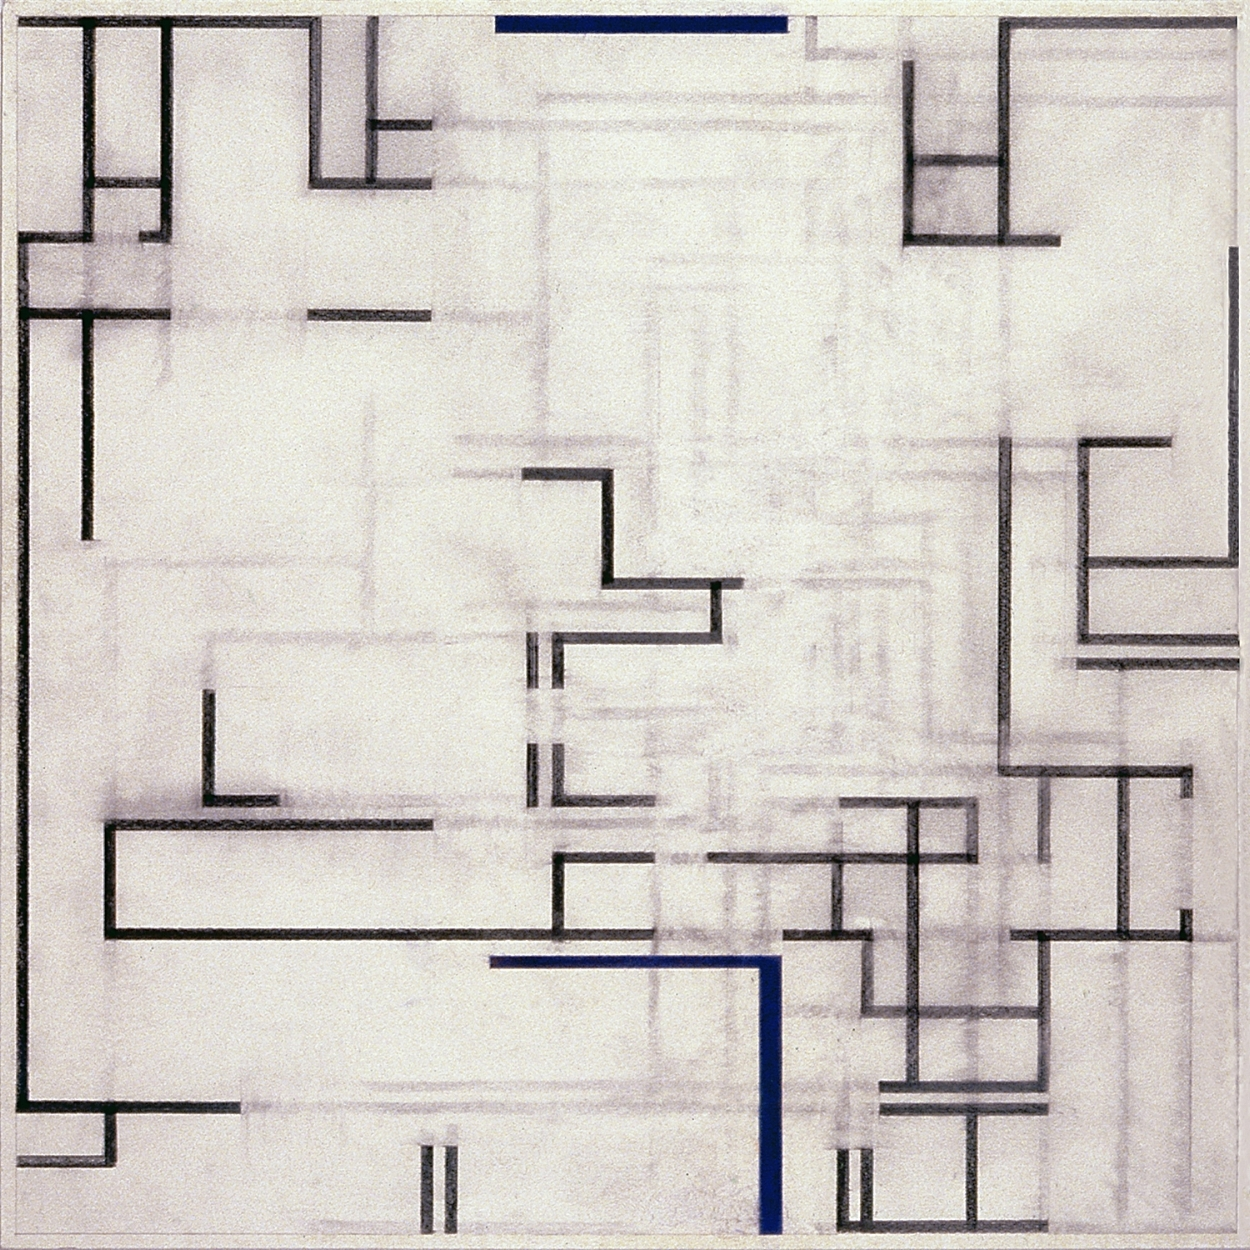 Untitled Drawing, 1984